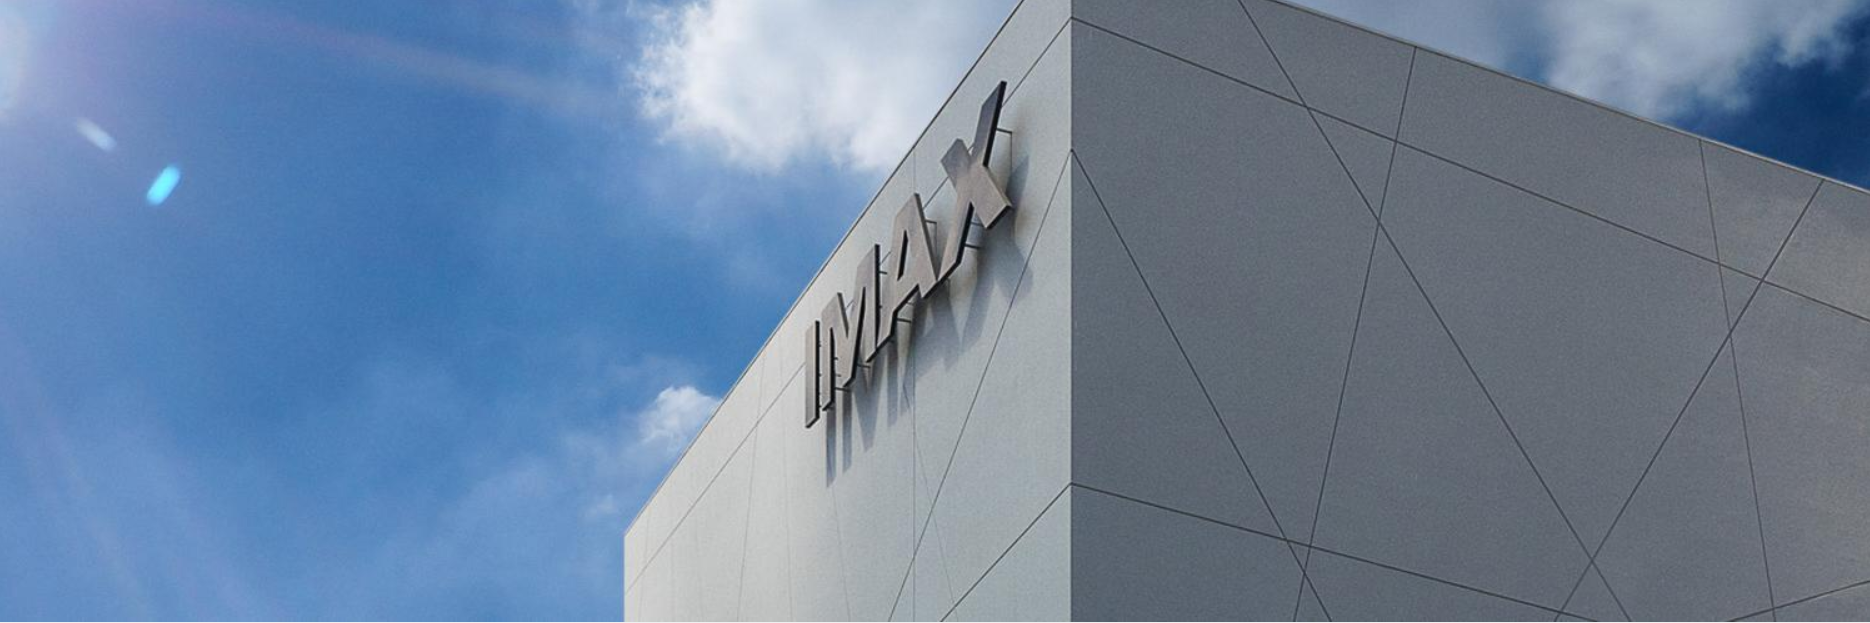 The IMAX logo at the top of a building.